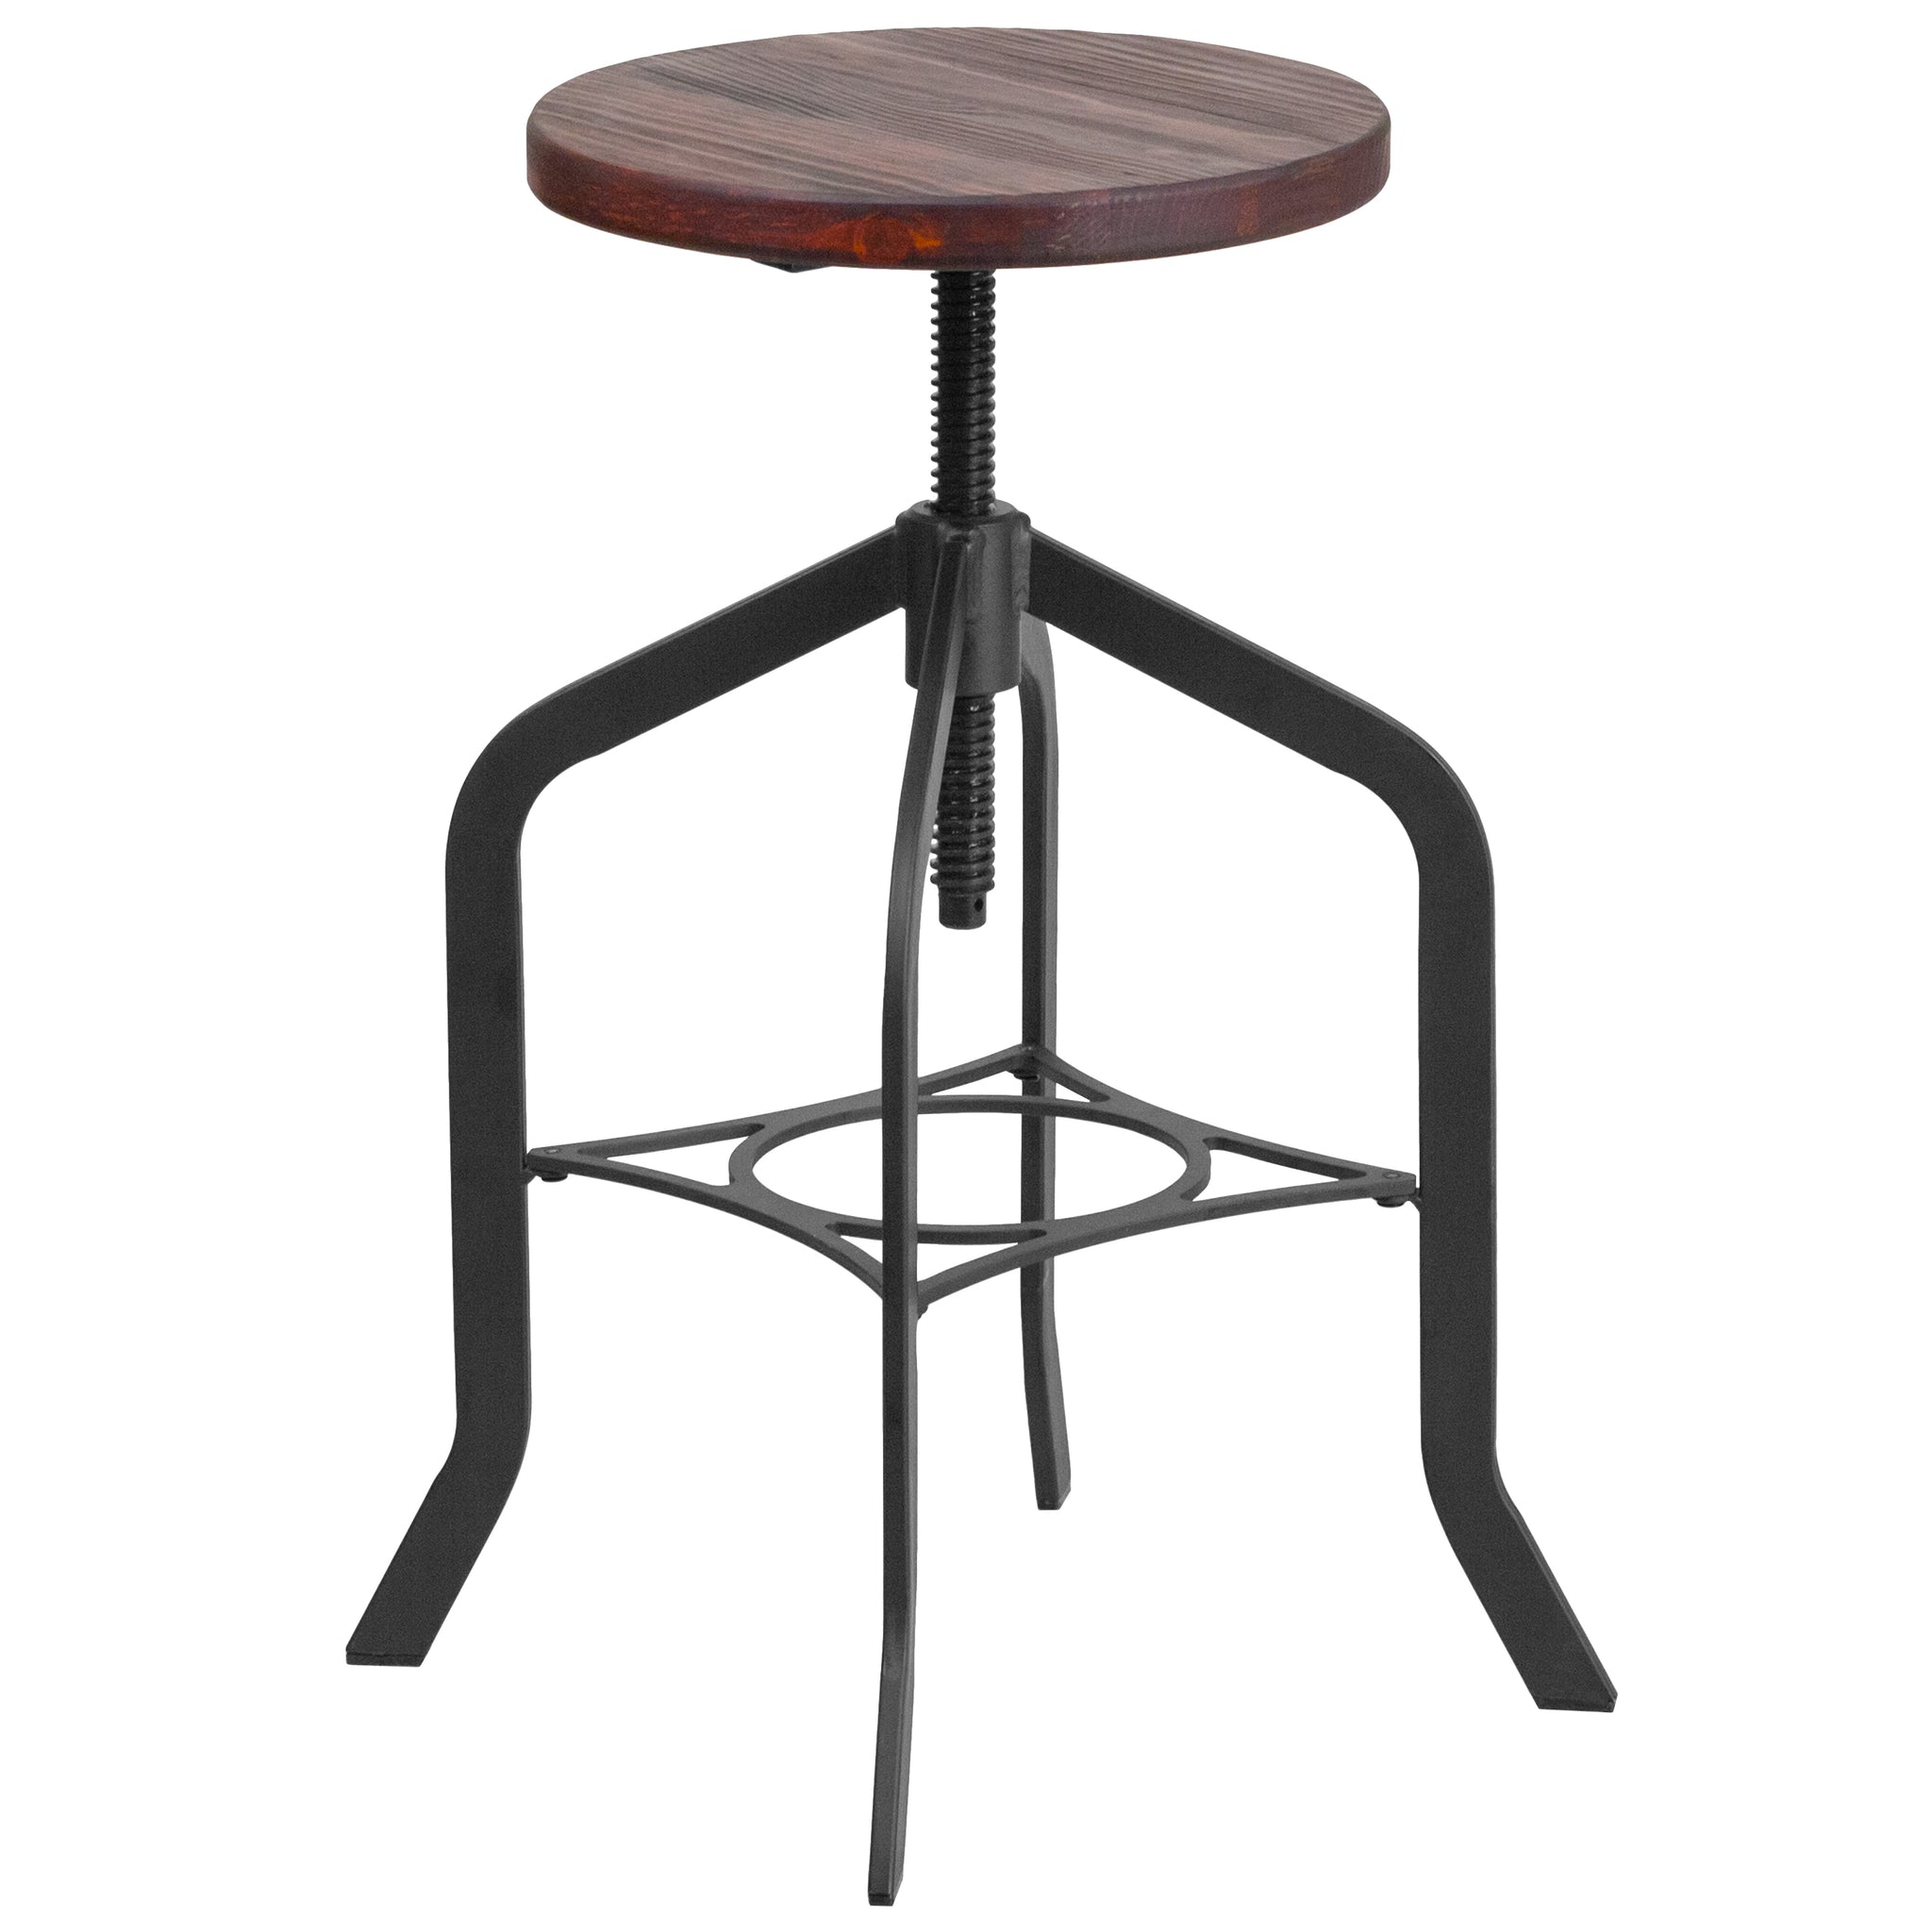 24'' Counter Height Stool with Swivel Lift Wood Seat: Pine